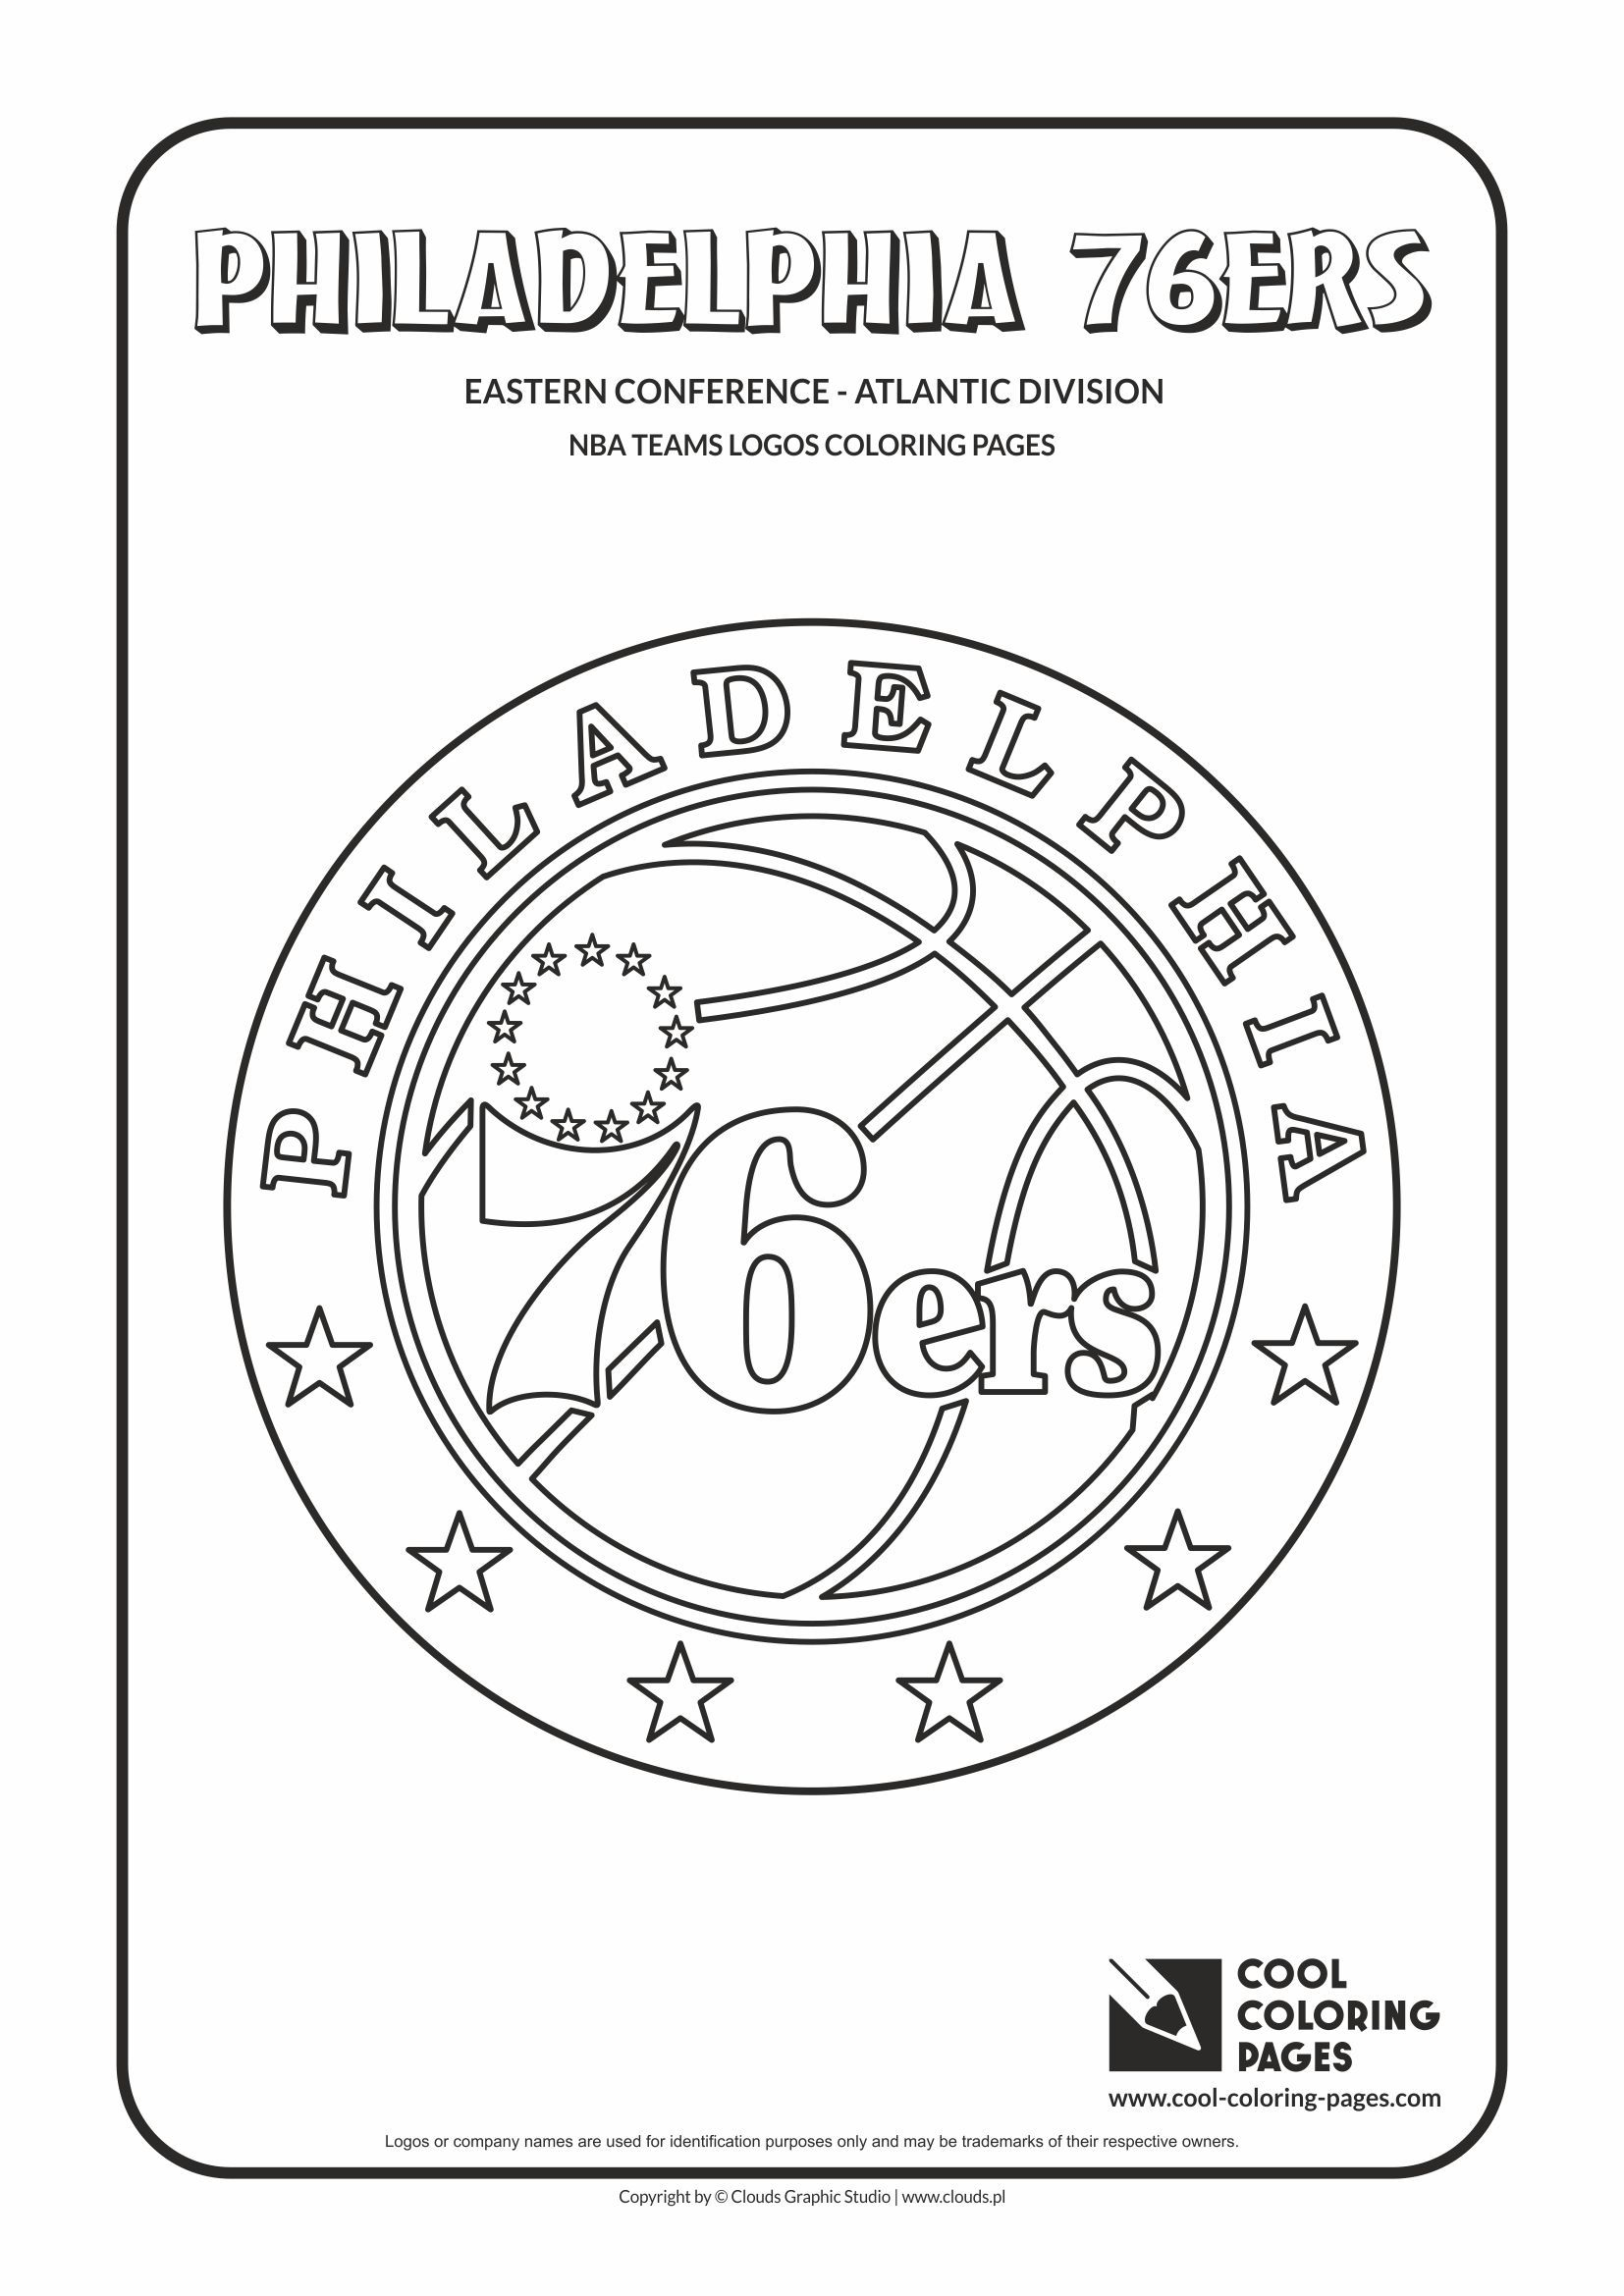 Philadelphia 76ers Nba Basketball Teams Logos Coloring Pages